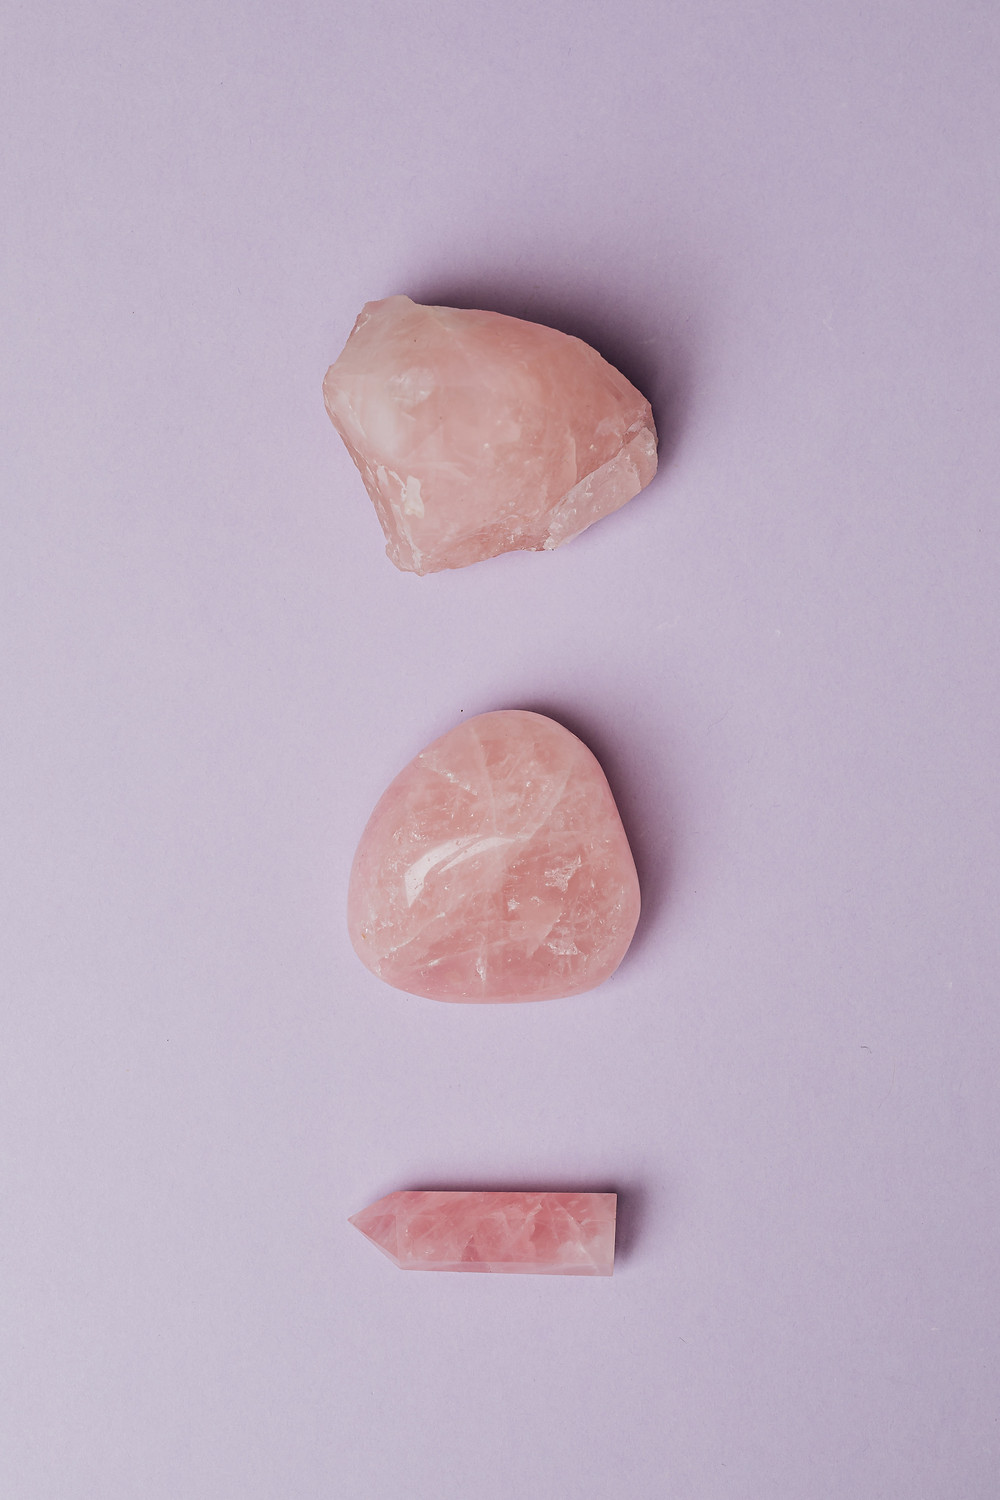 Three pink healing crystals are oriented in a vertical line and spaced evenly.